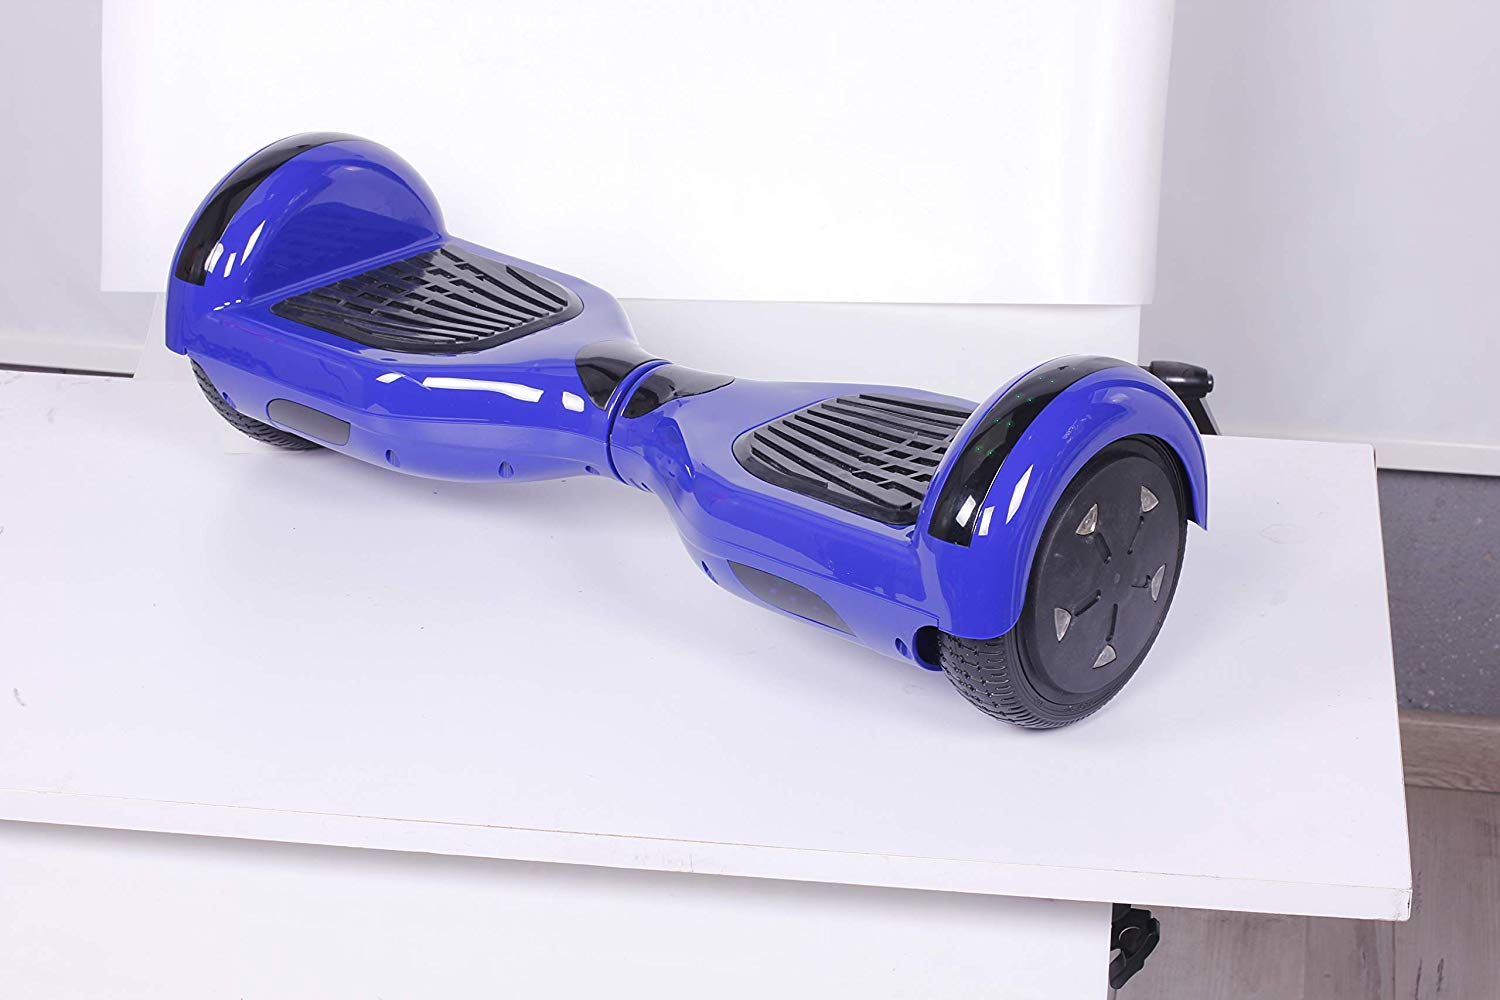 YHR Hoverboard UL 2272 Certified Two Wheel Electric Scooter for Adult and Kids Smart Self- Balancing Scooter